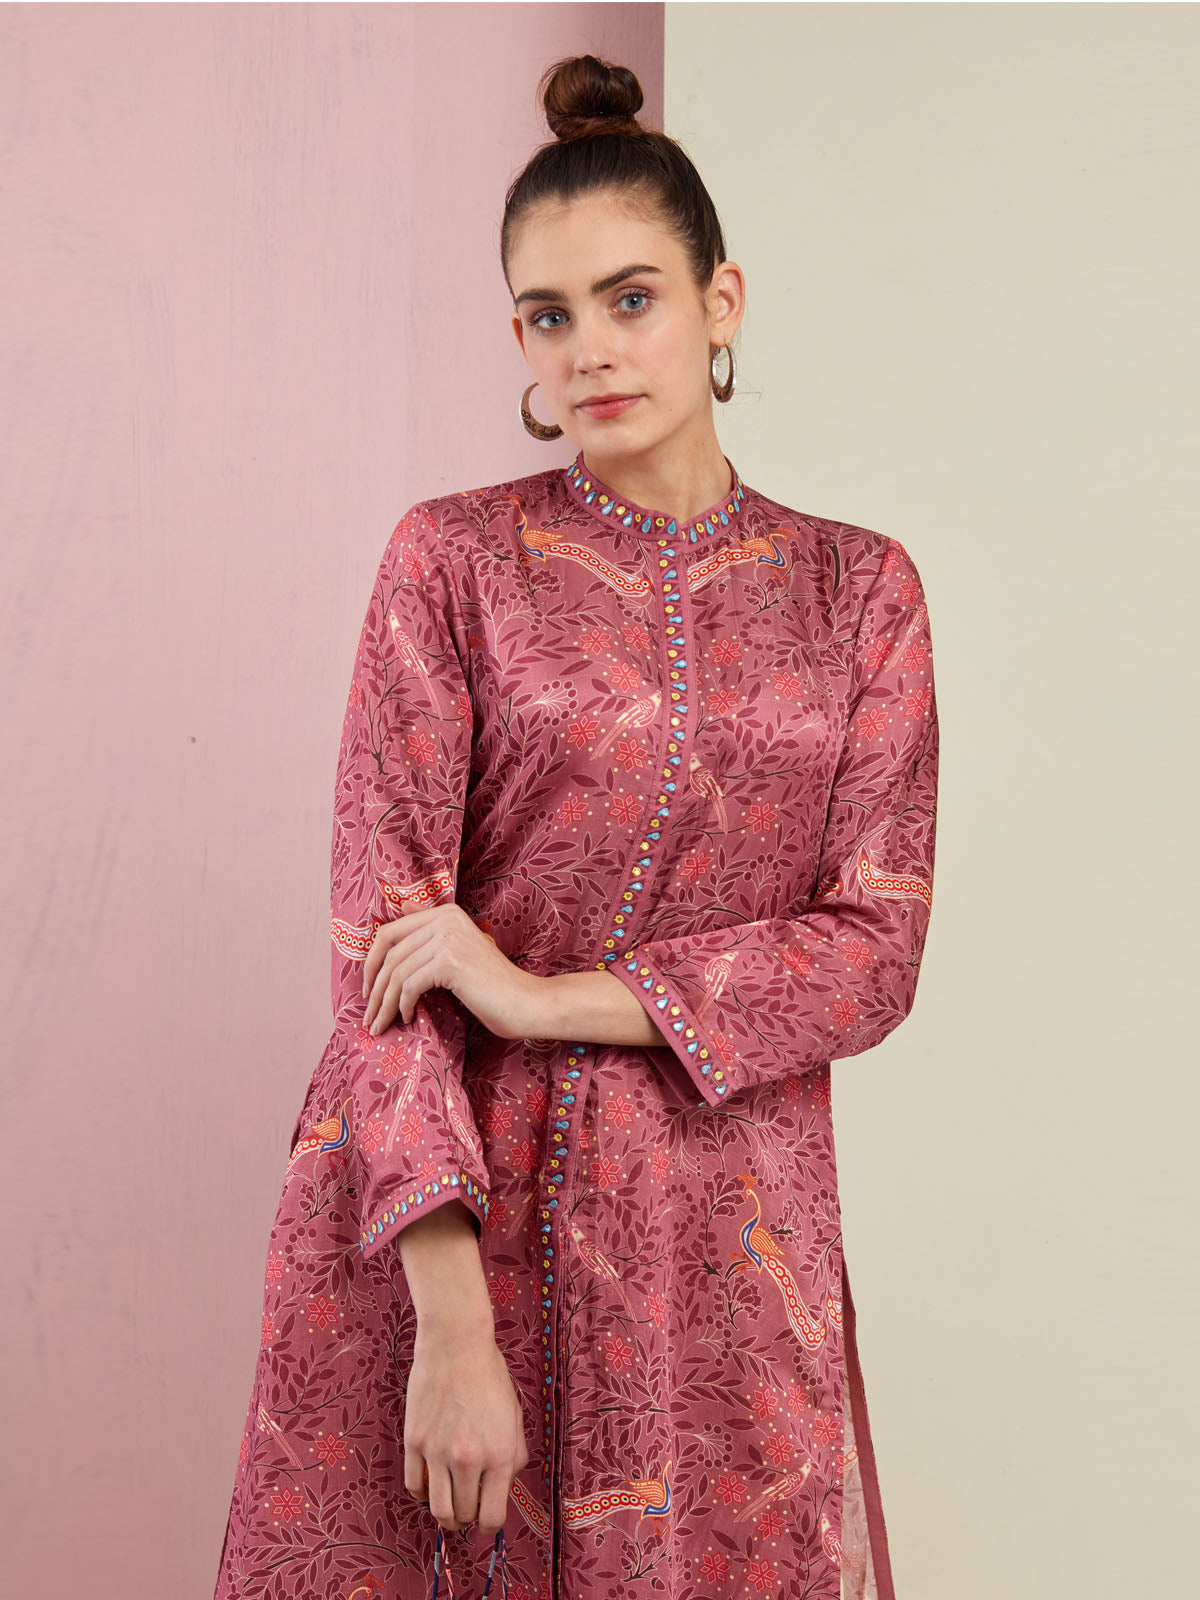 MORBAGH ROSE SMALL PEACOCK PRINTED KURTA WITH PANTS